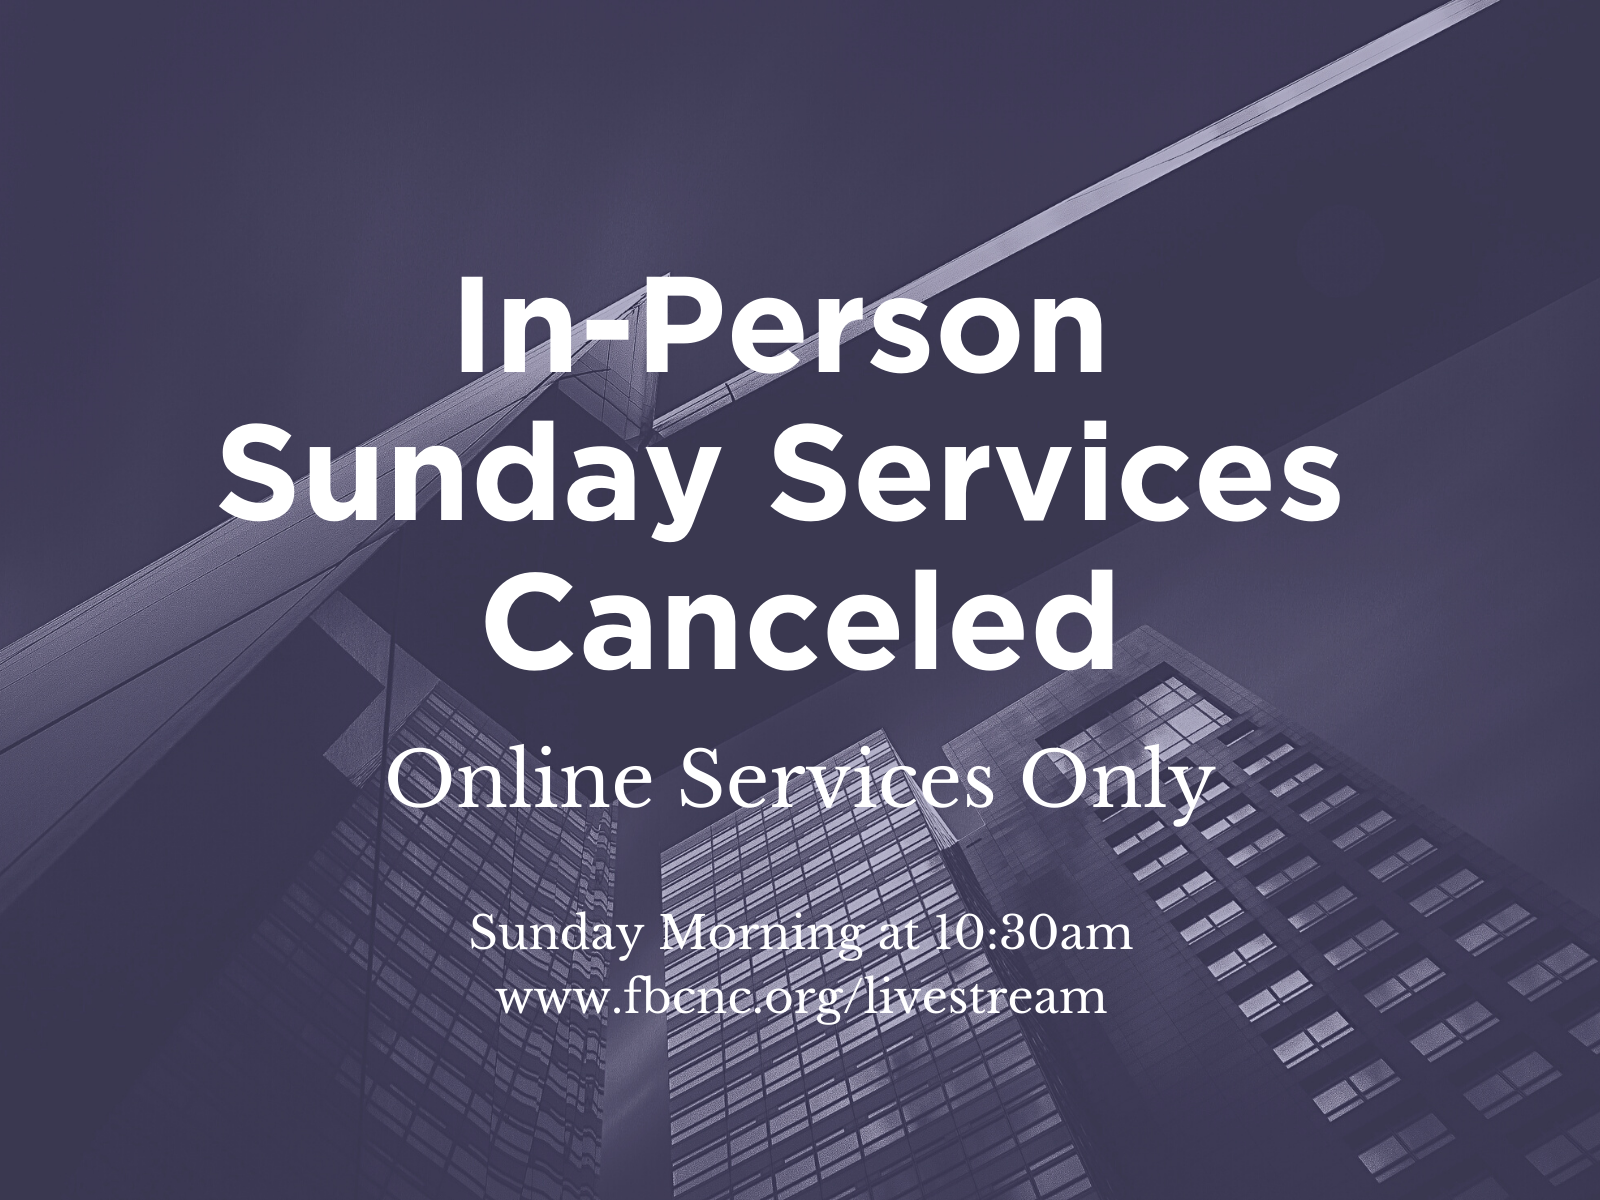 In-Person Sunday Services Canceled Sq